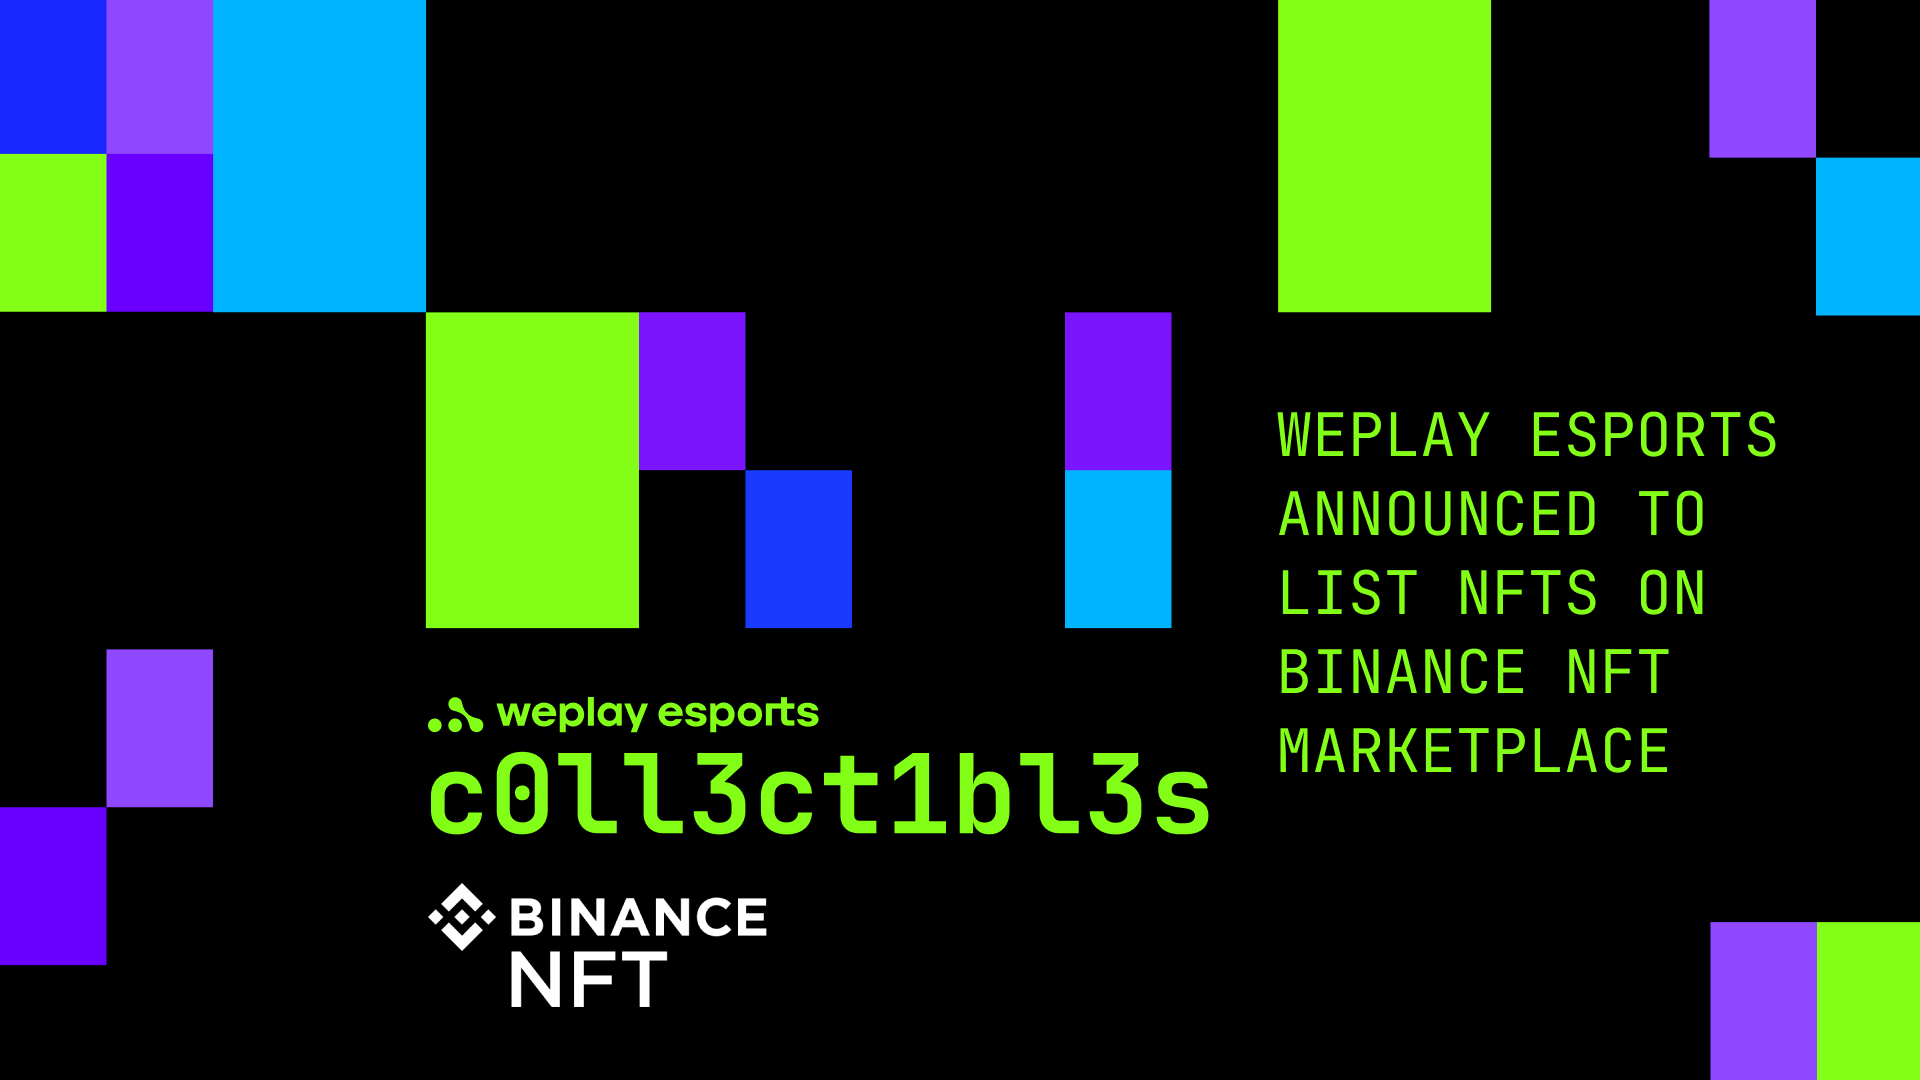 WePlay Esports announced to list NFTs on Binance NFT Marketplace. Image: WePlay Holding